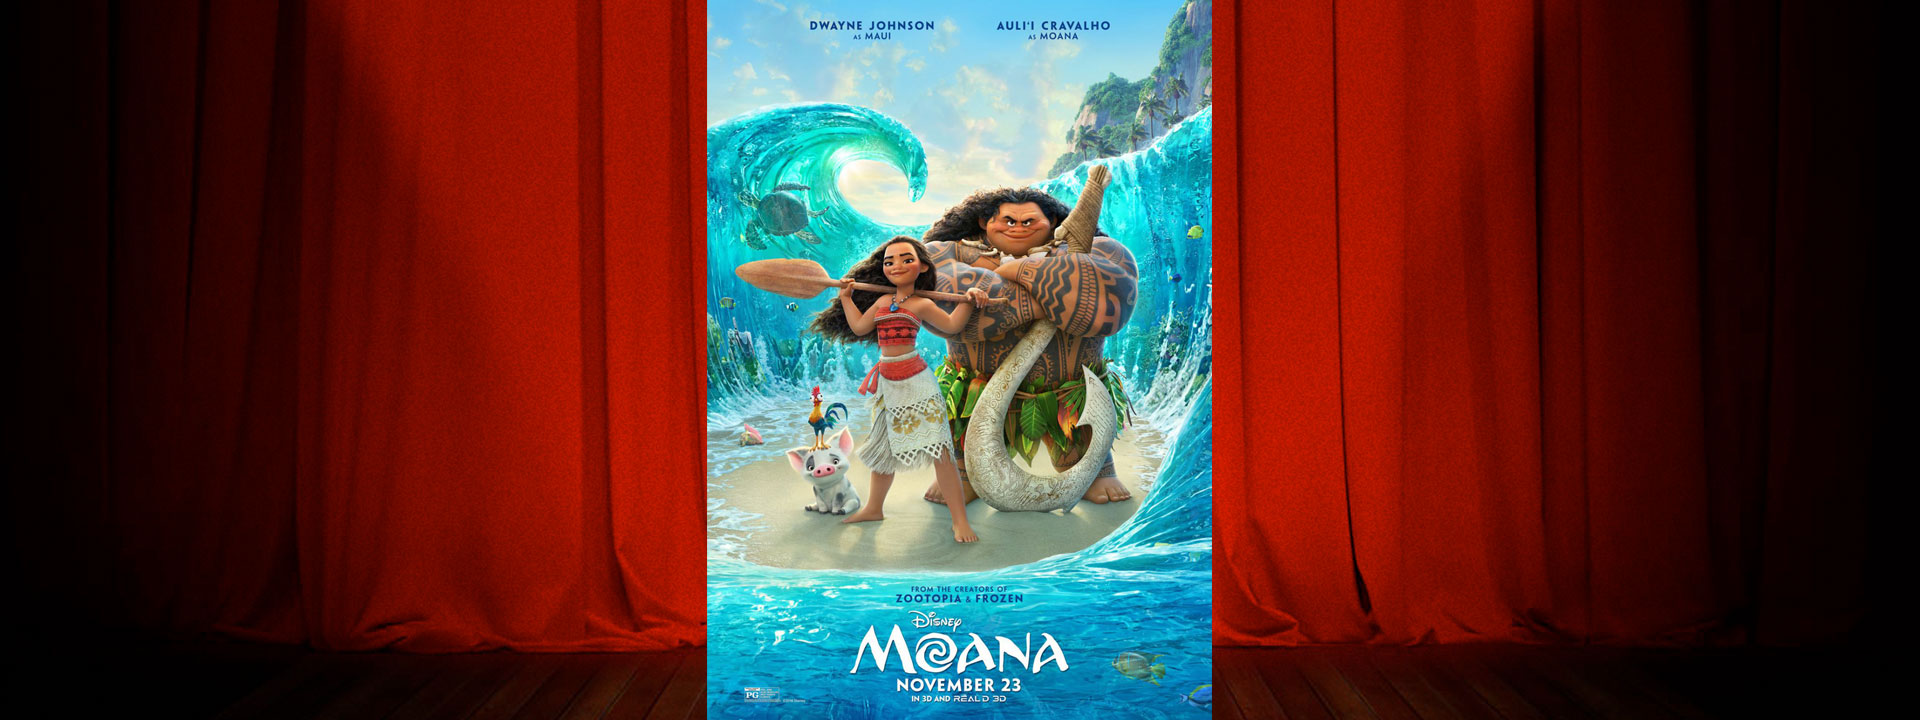 Moana - Now Playing